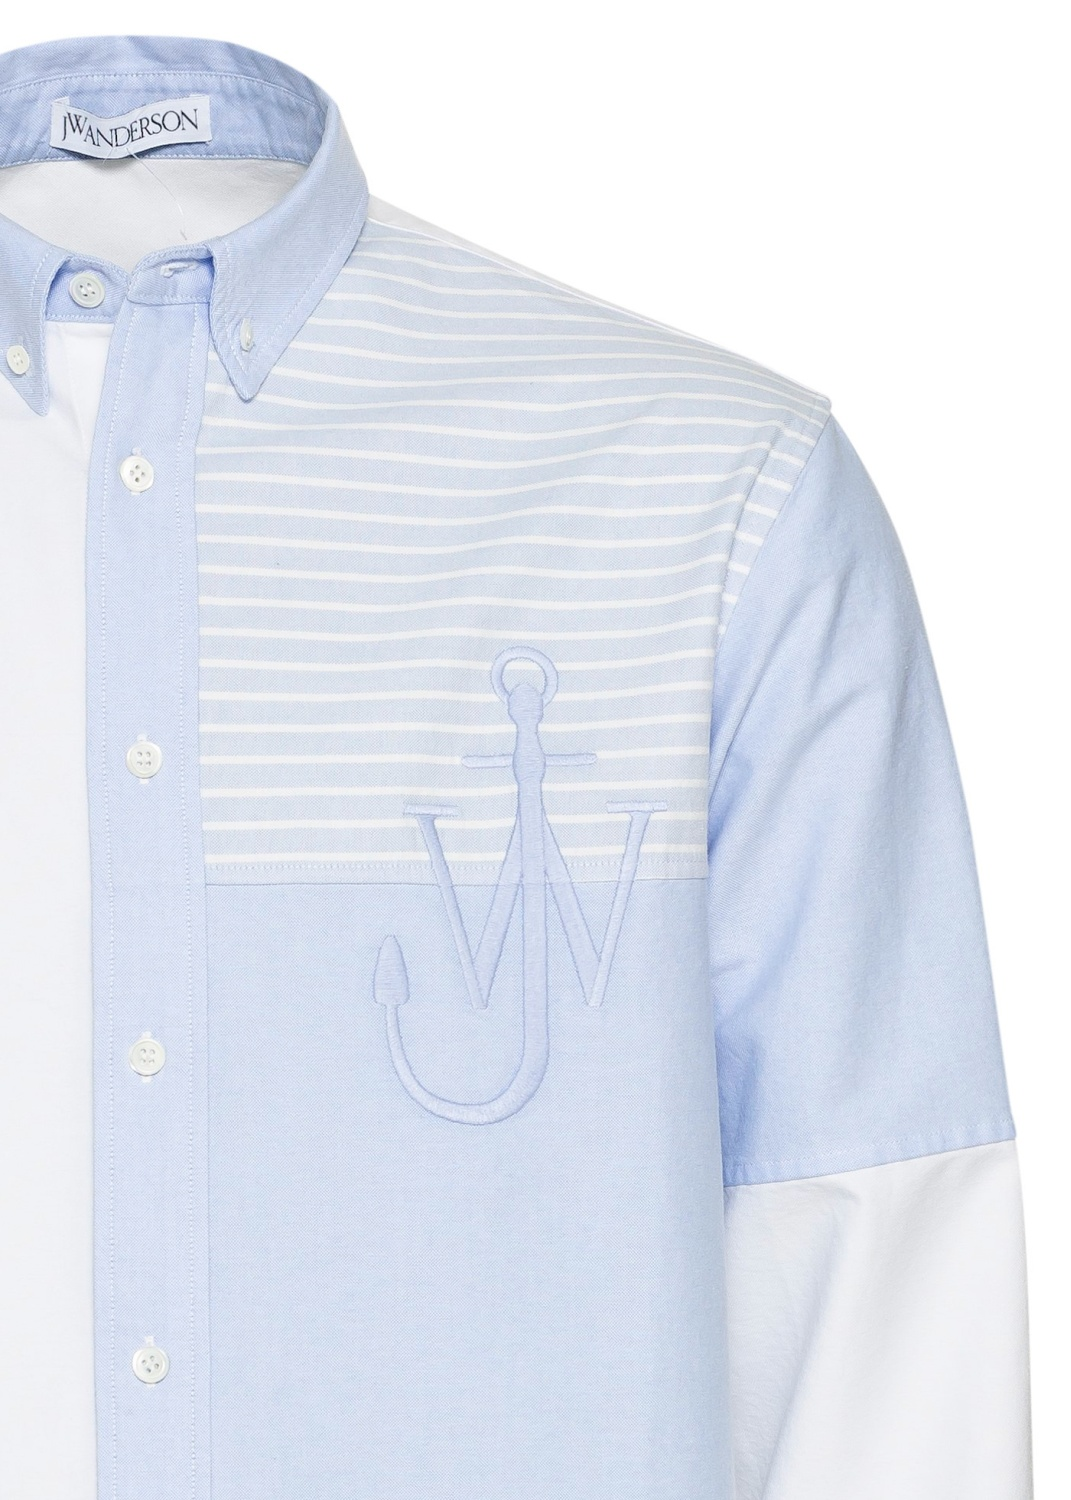 Relaxed Patchwork Shirt image number 2